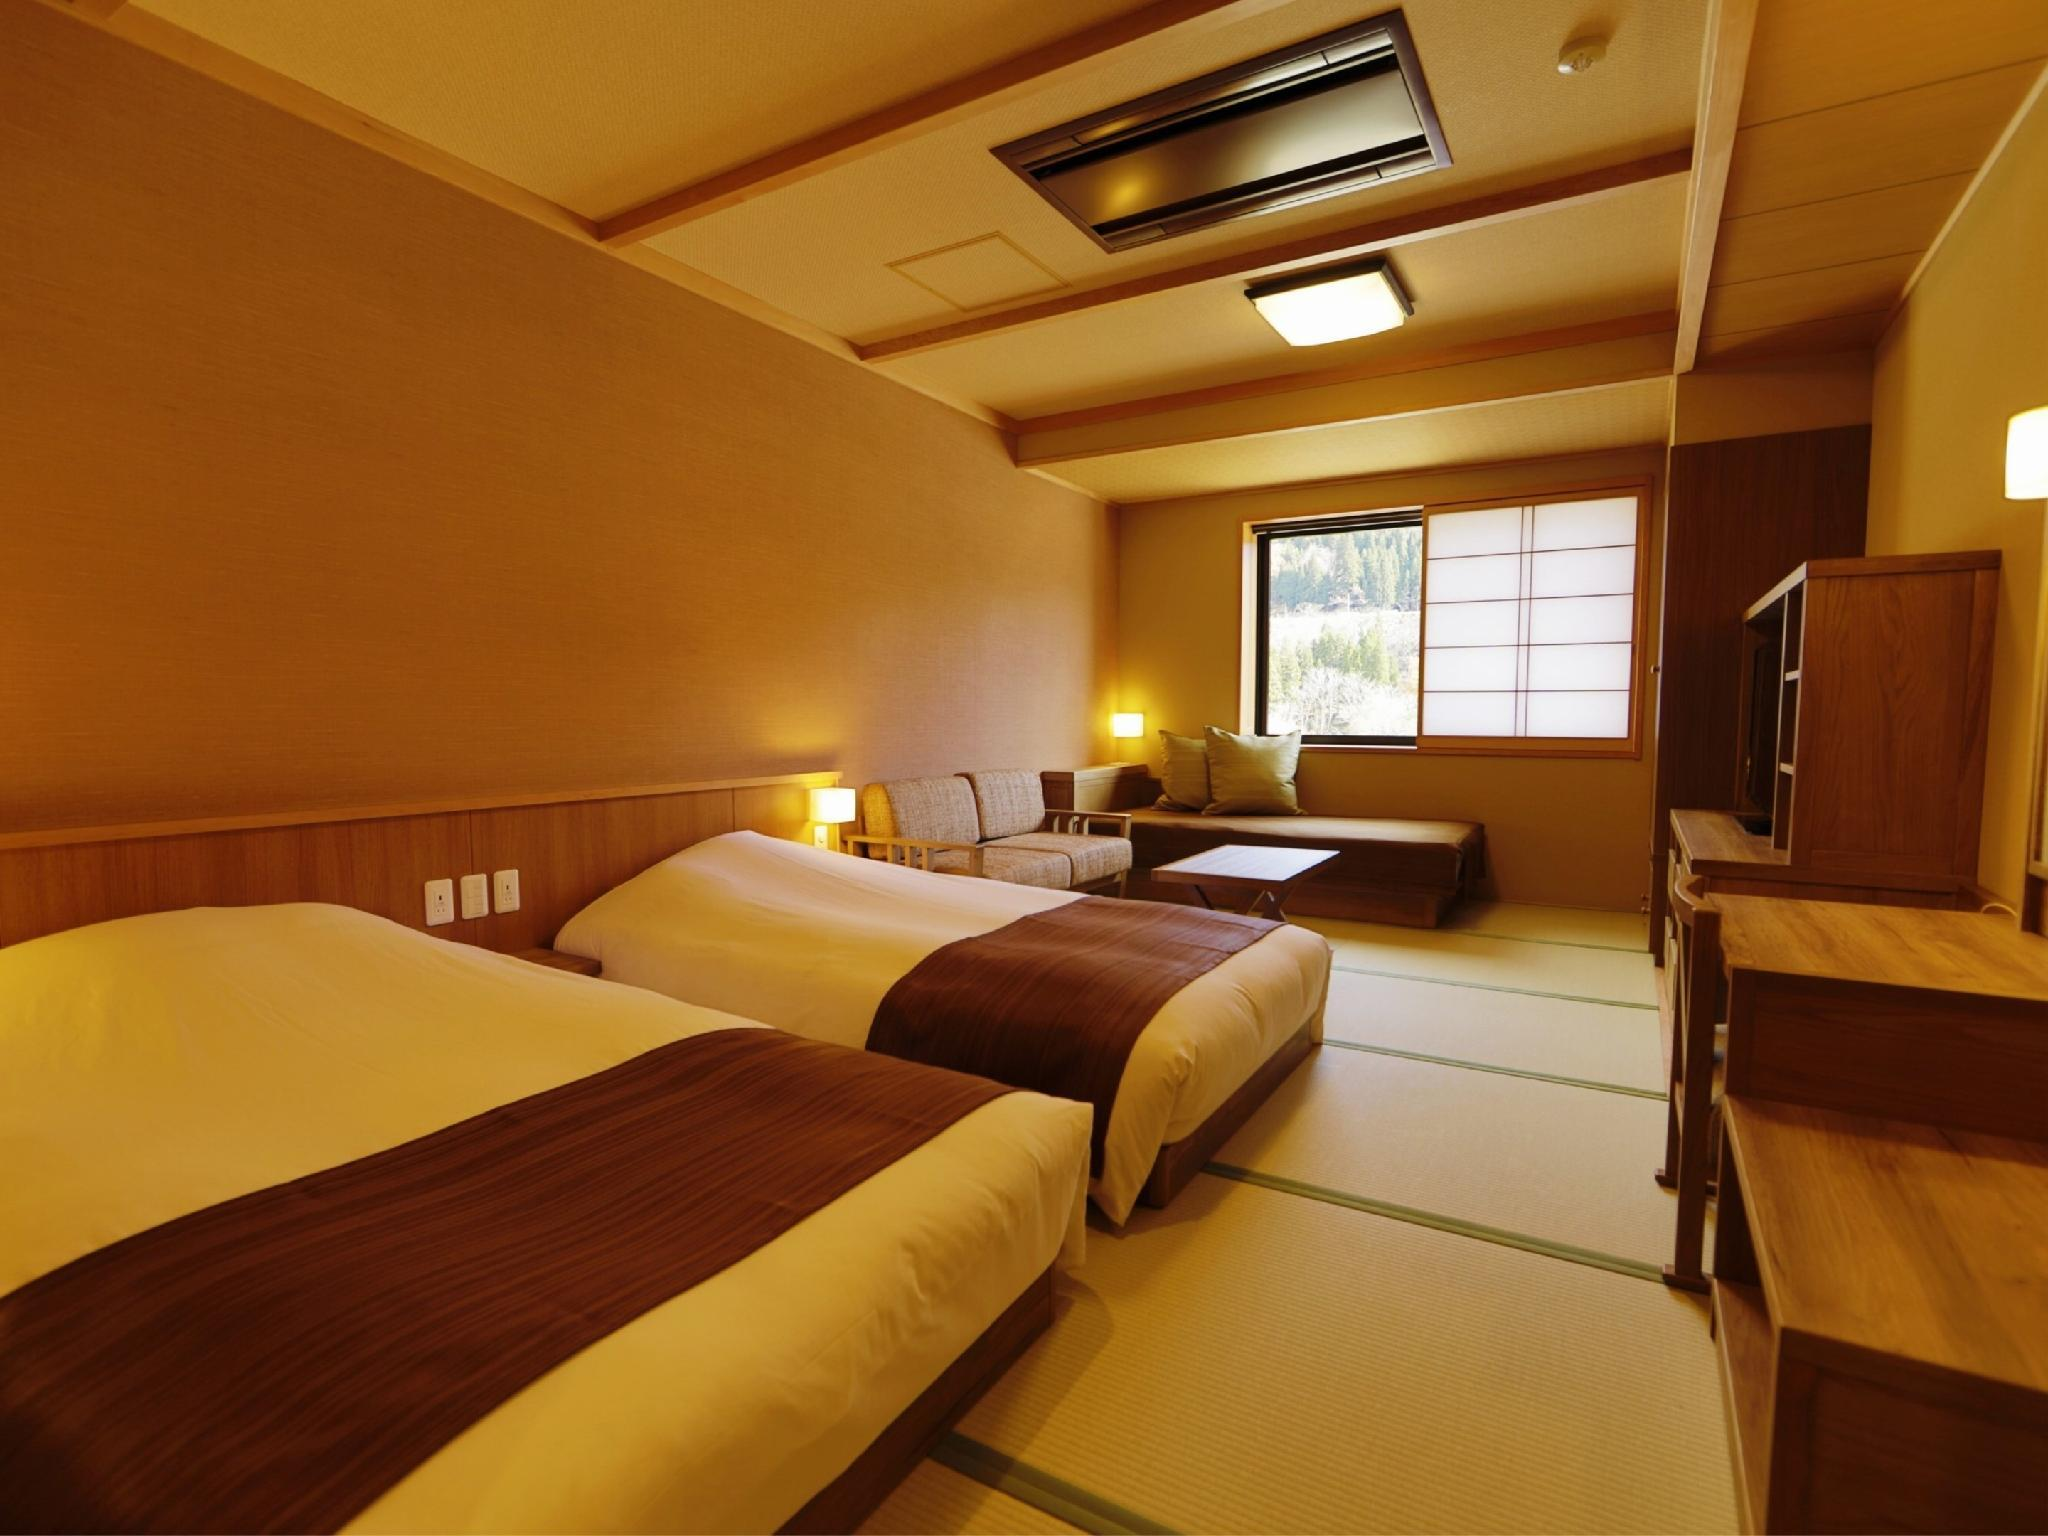 舒適雙人雙床房(日式矮床) (Comfort Twin Room with Japanese Bed(s))